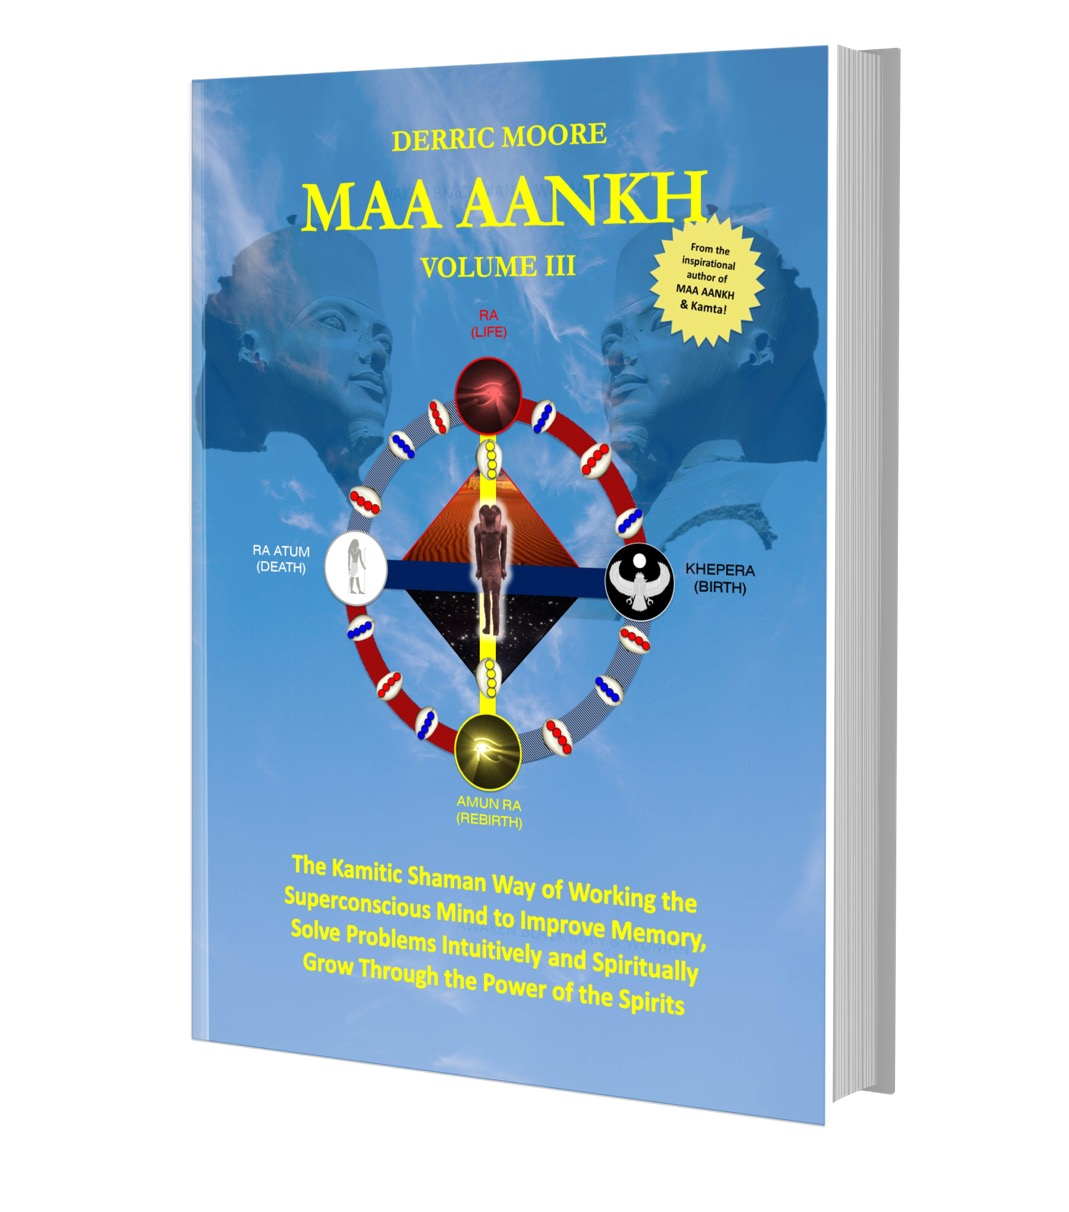 MAA AANKH Volume III: The Kamitic Shaman Way of Working the Superconscious Mind to Improve Memory, Solve Problems Intuitively